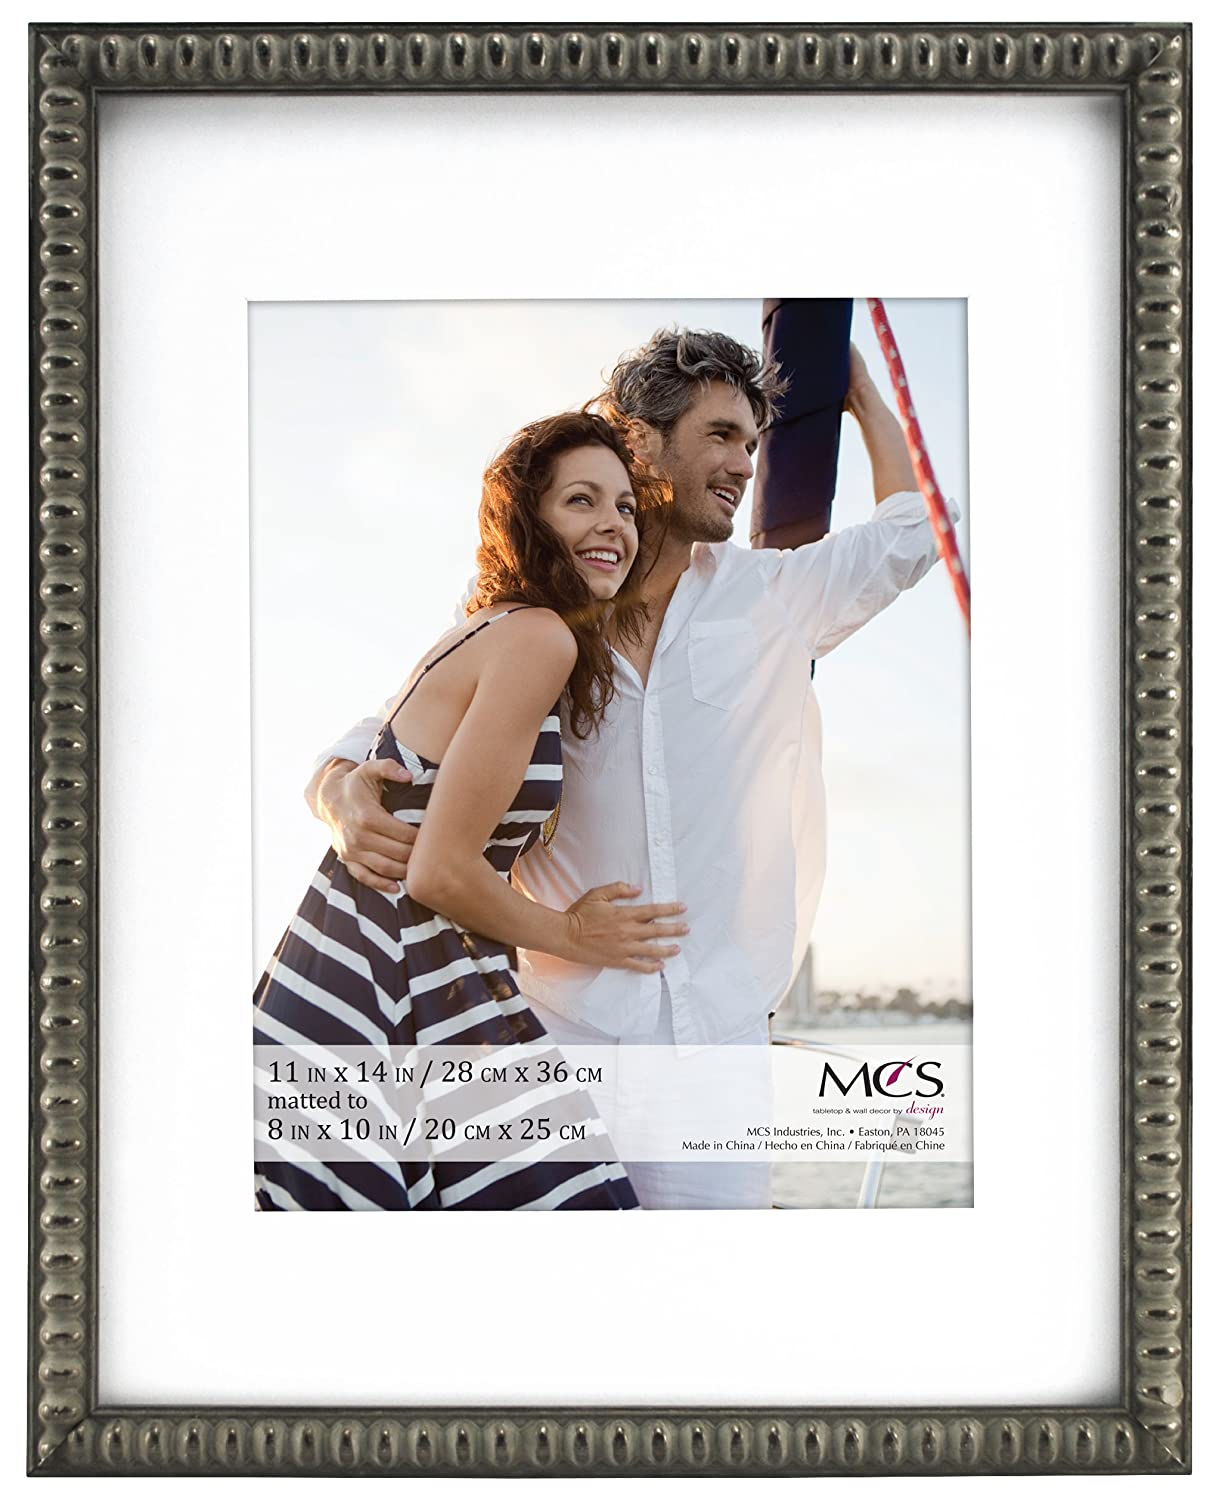 Amazon.de: MCS 11 x 14 Passepartout Rahmen, Zinn-Finish, 27, 9 x 35 ...